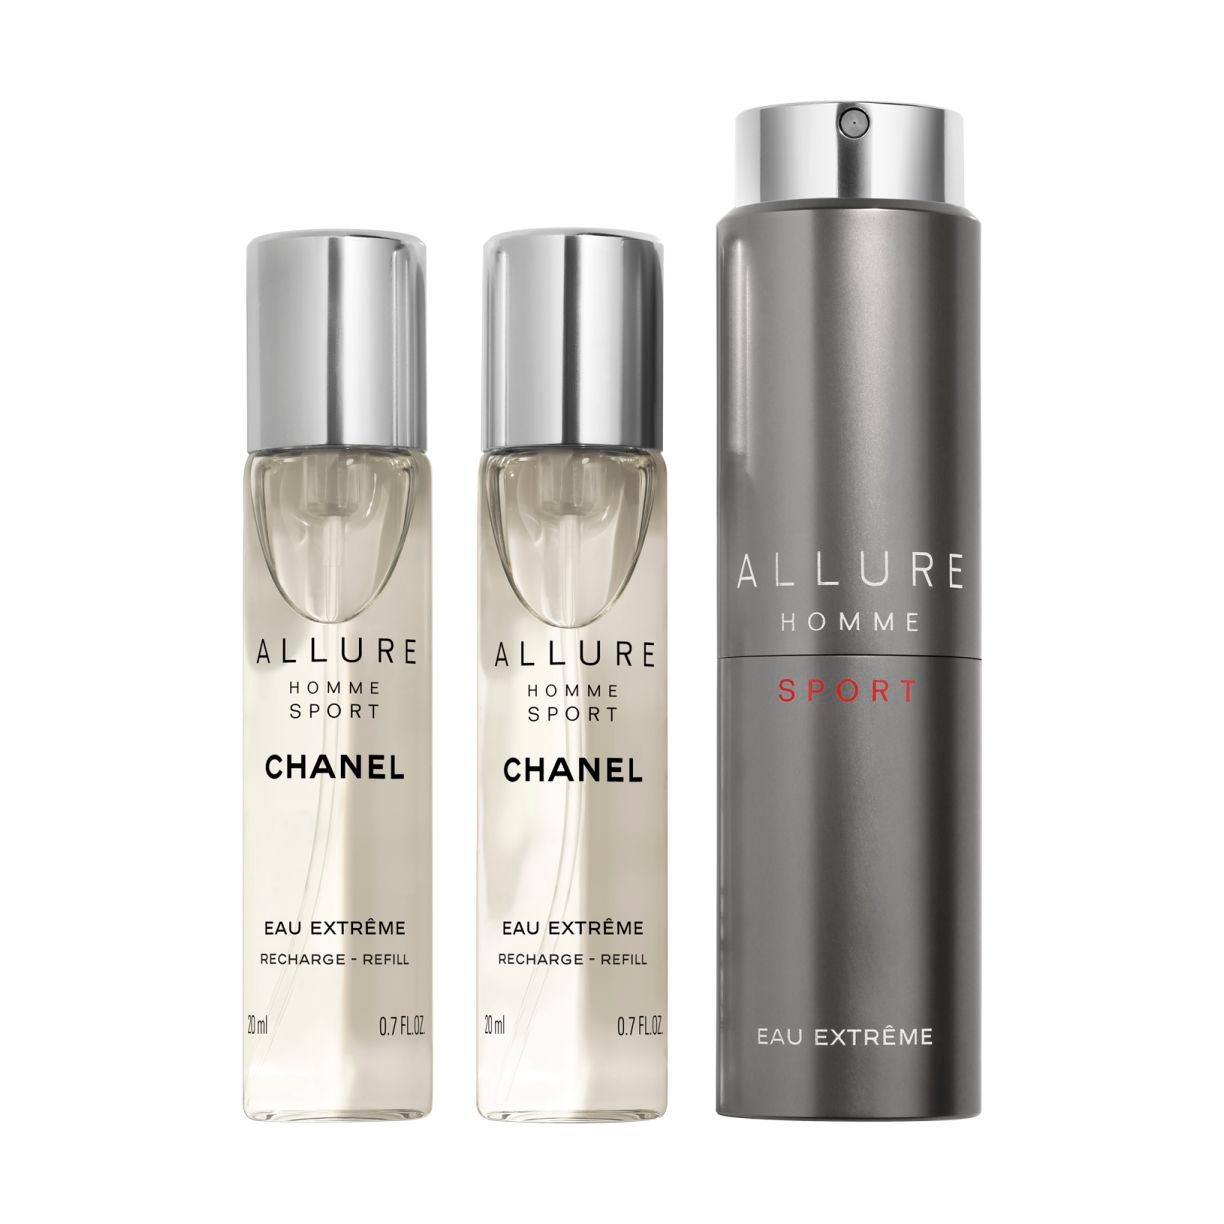 ALLURE HOMME SPORT EAU EXTRÊME REFILLABLE TRAVEL SPRAY 3 X 20ML